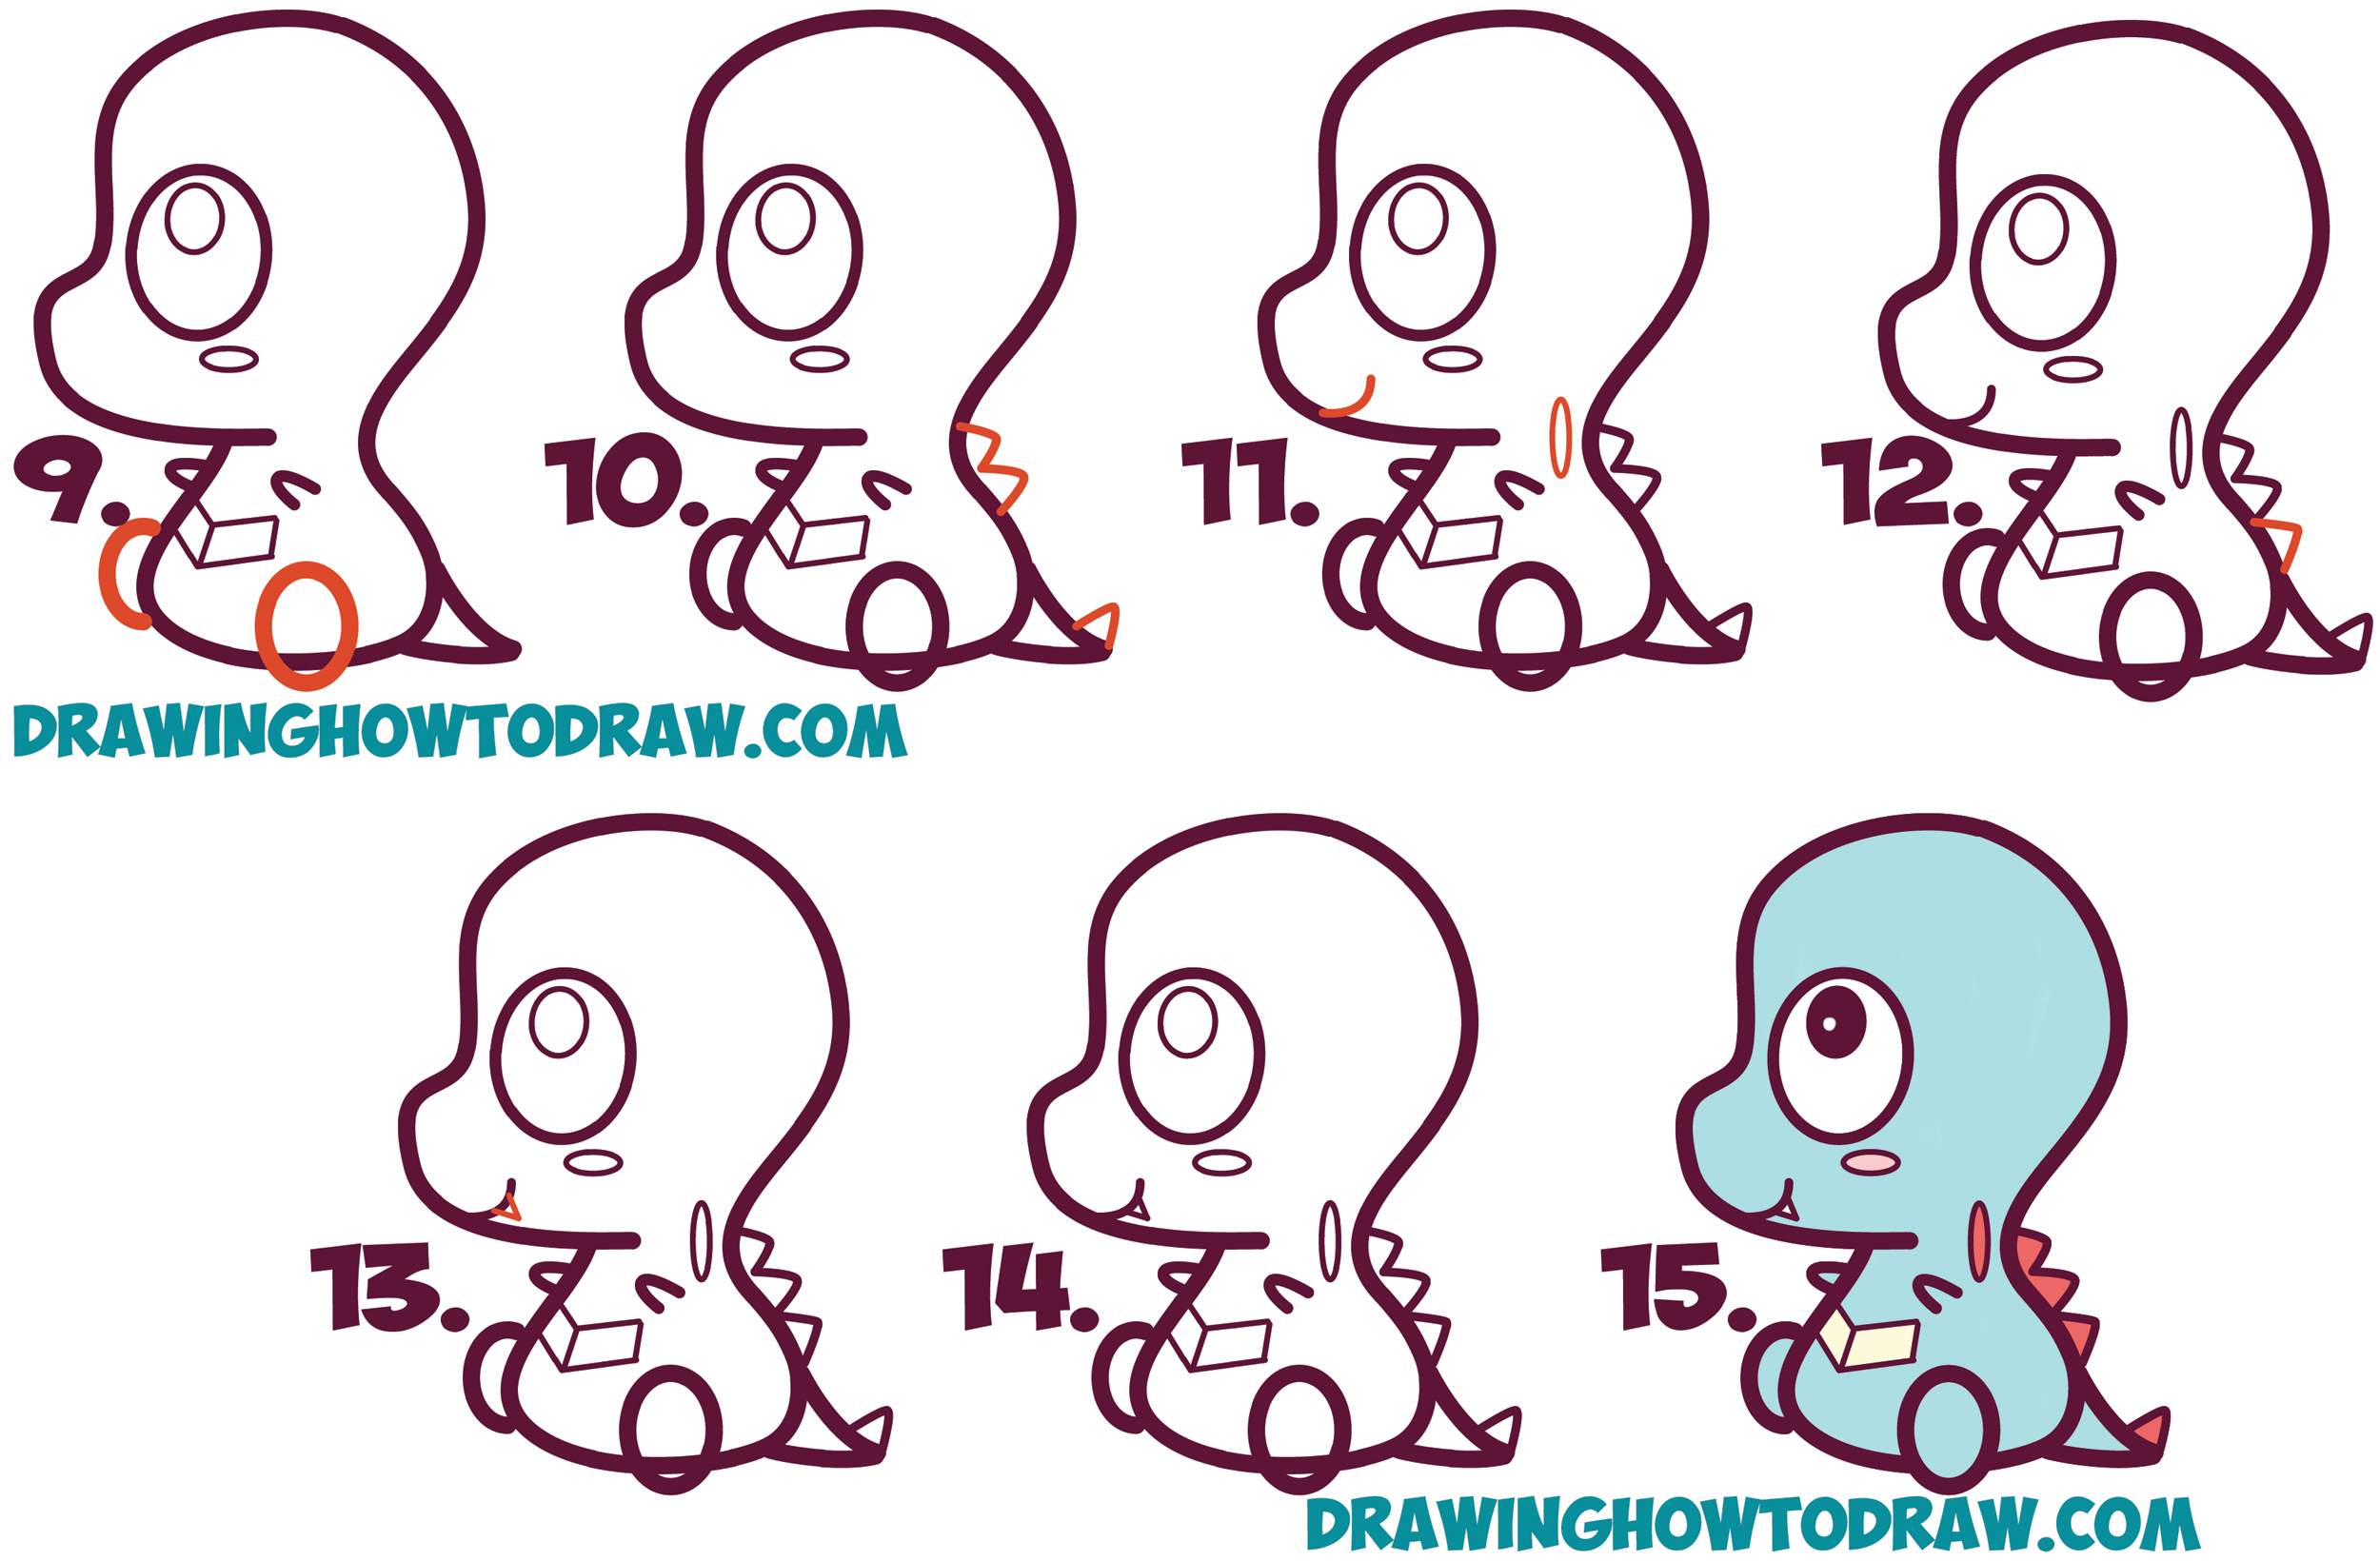 Learn How to Draw Cute / Chibi / Kawaii Totodile from Pokemon with Simple Steps Drawing Lesson for Children